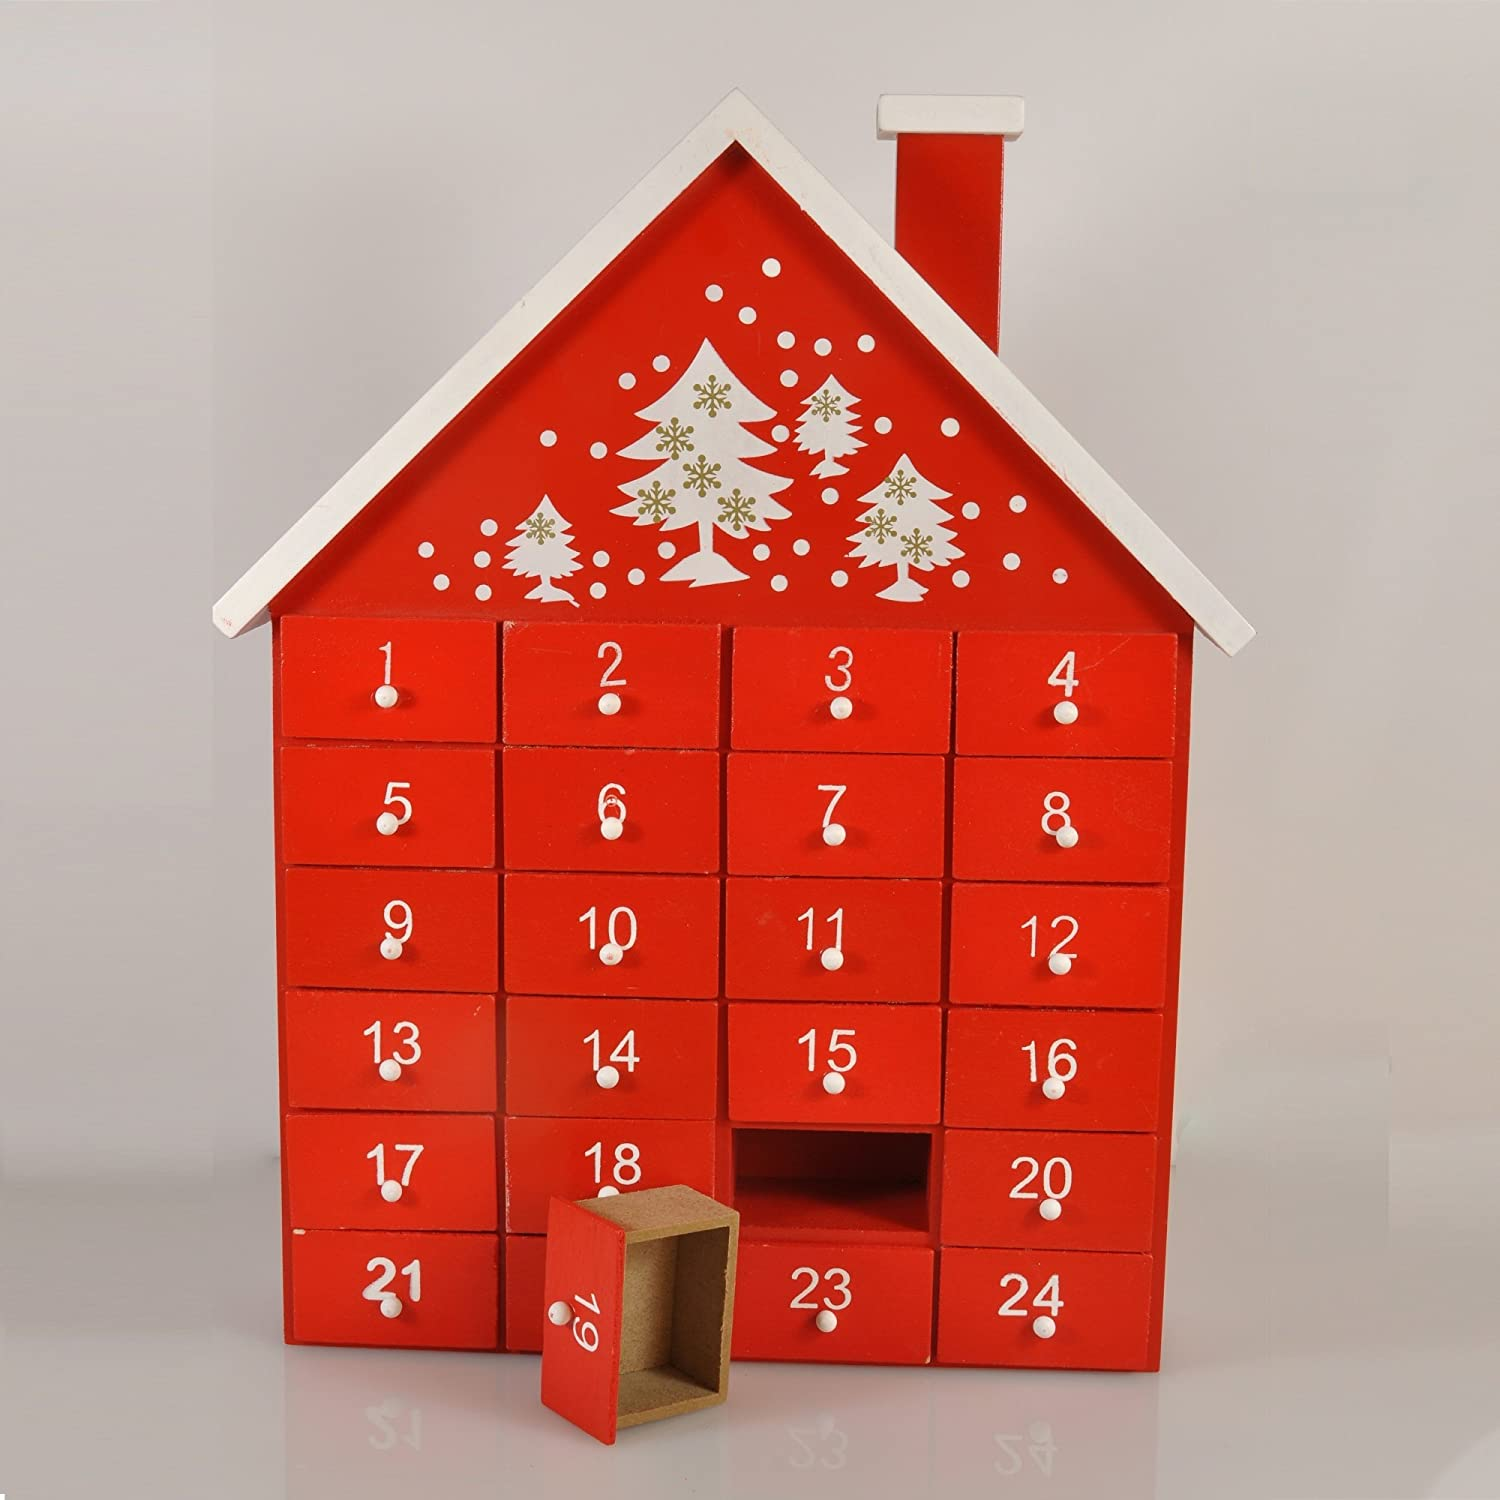 Gisela Graham Wooden Christmas Red Advent Calendar House With Individual Drawers By Gisela Graham Amazon Co Uk Kitchen Home